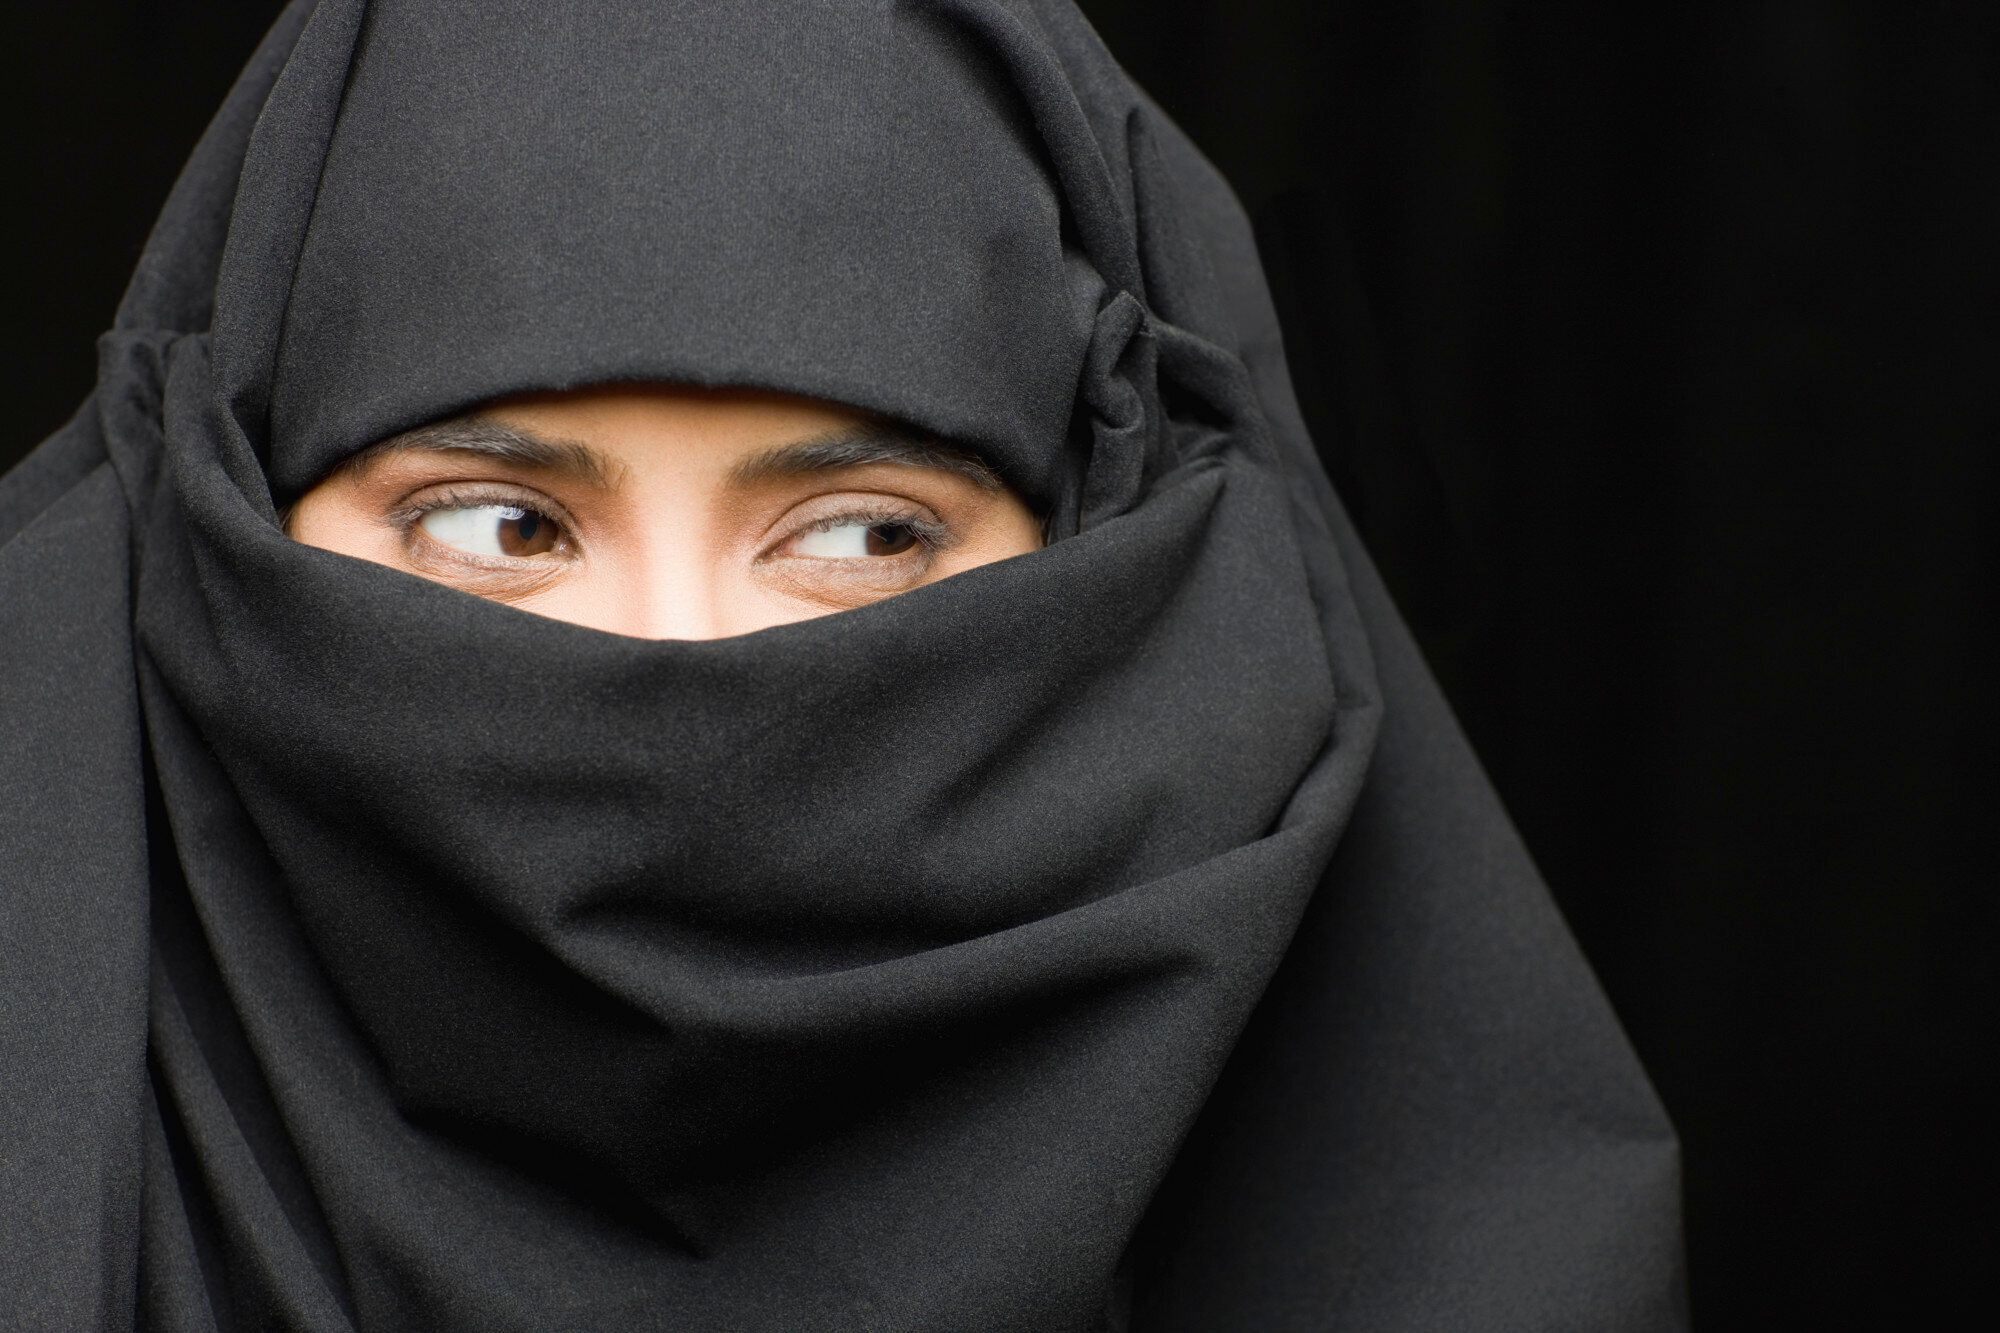 Iran Beautiful Girl Wallpaper Burka Ban Why Muslim Women Cover Up Huffpost Uk